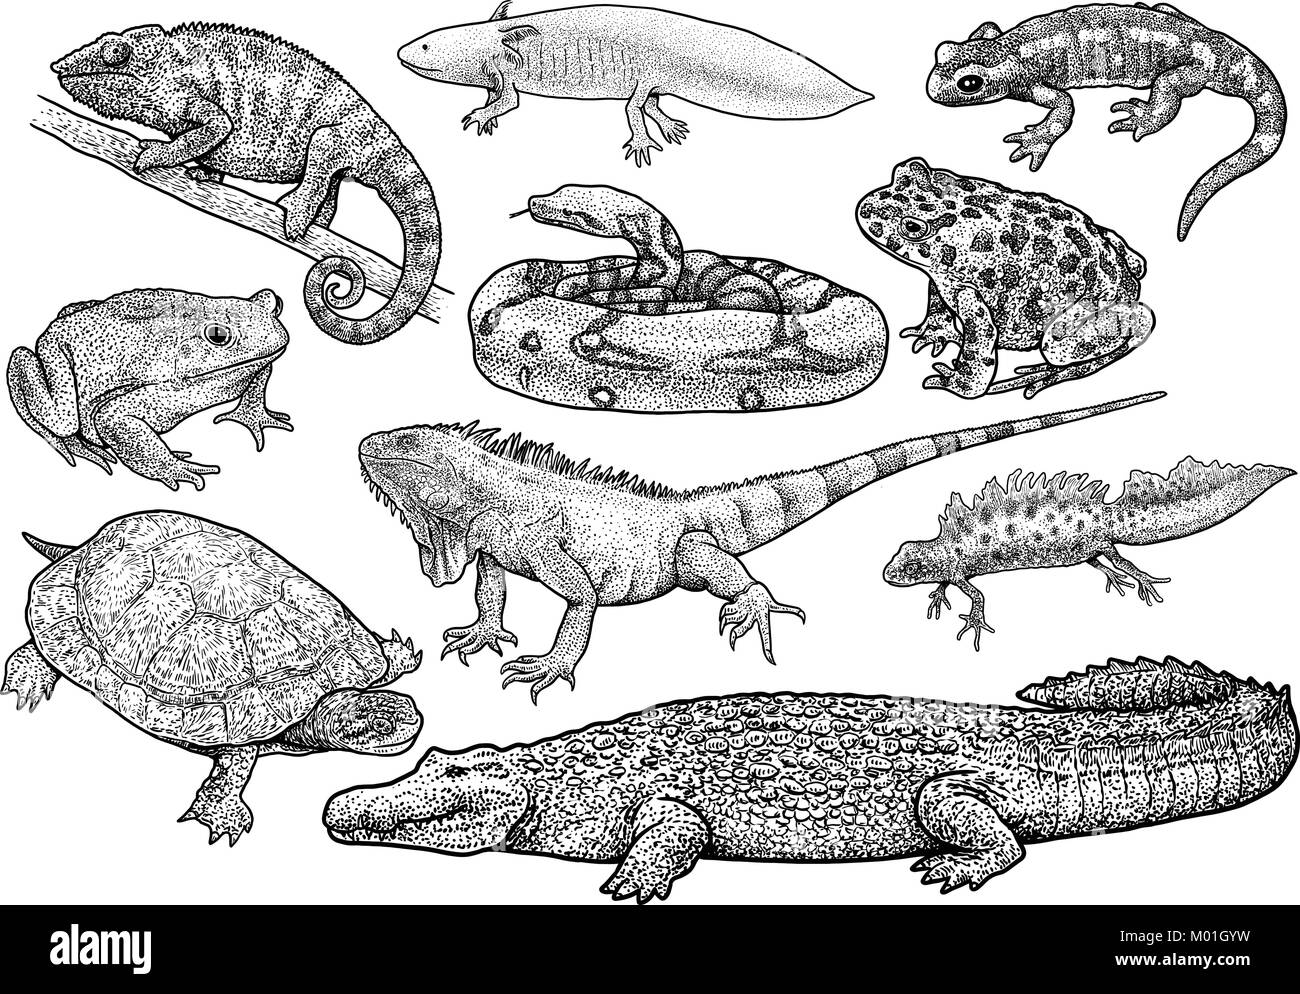 Amphibians and reptiles collection illustration, drawing, engraving, ink, line art, vector - Stock Vector